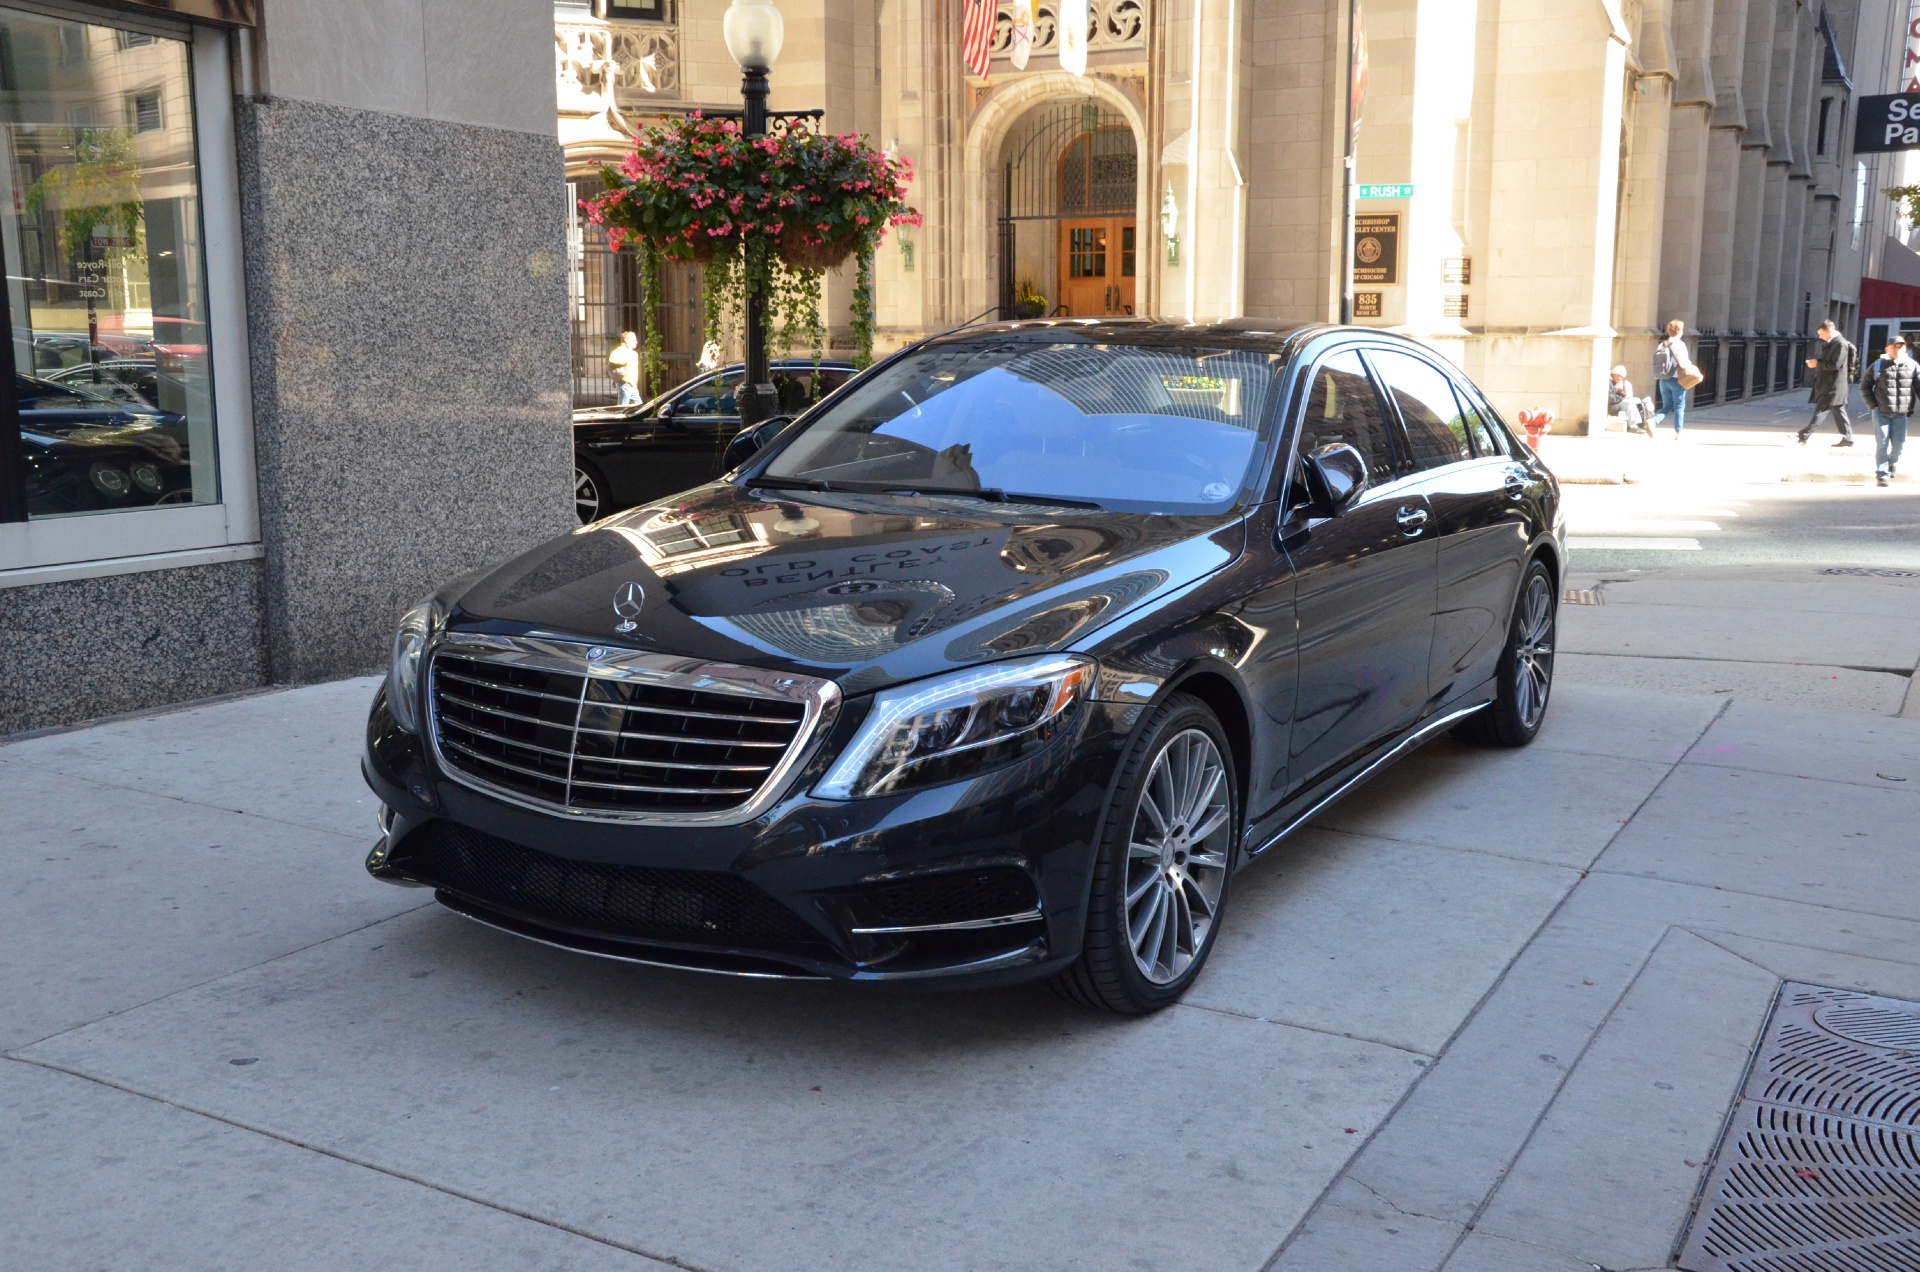 2015 mercedes-benz s-class s550 stock # r161a for  near